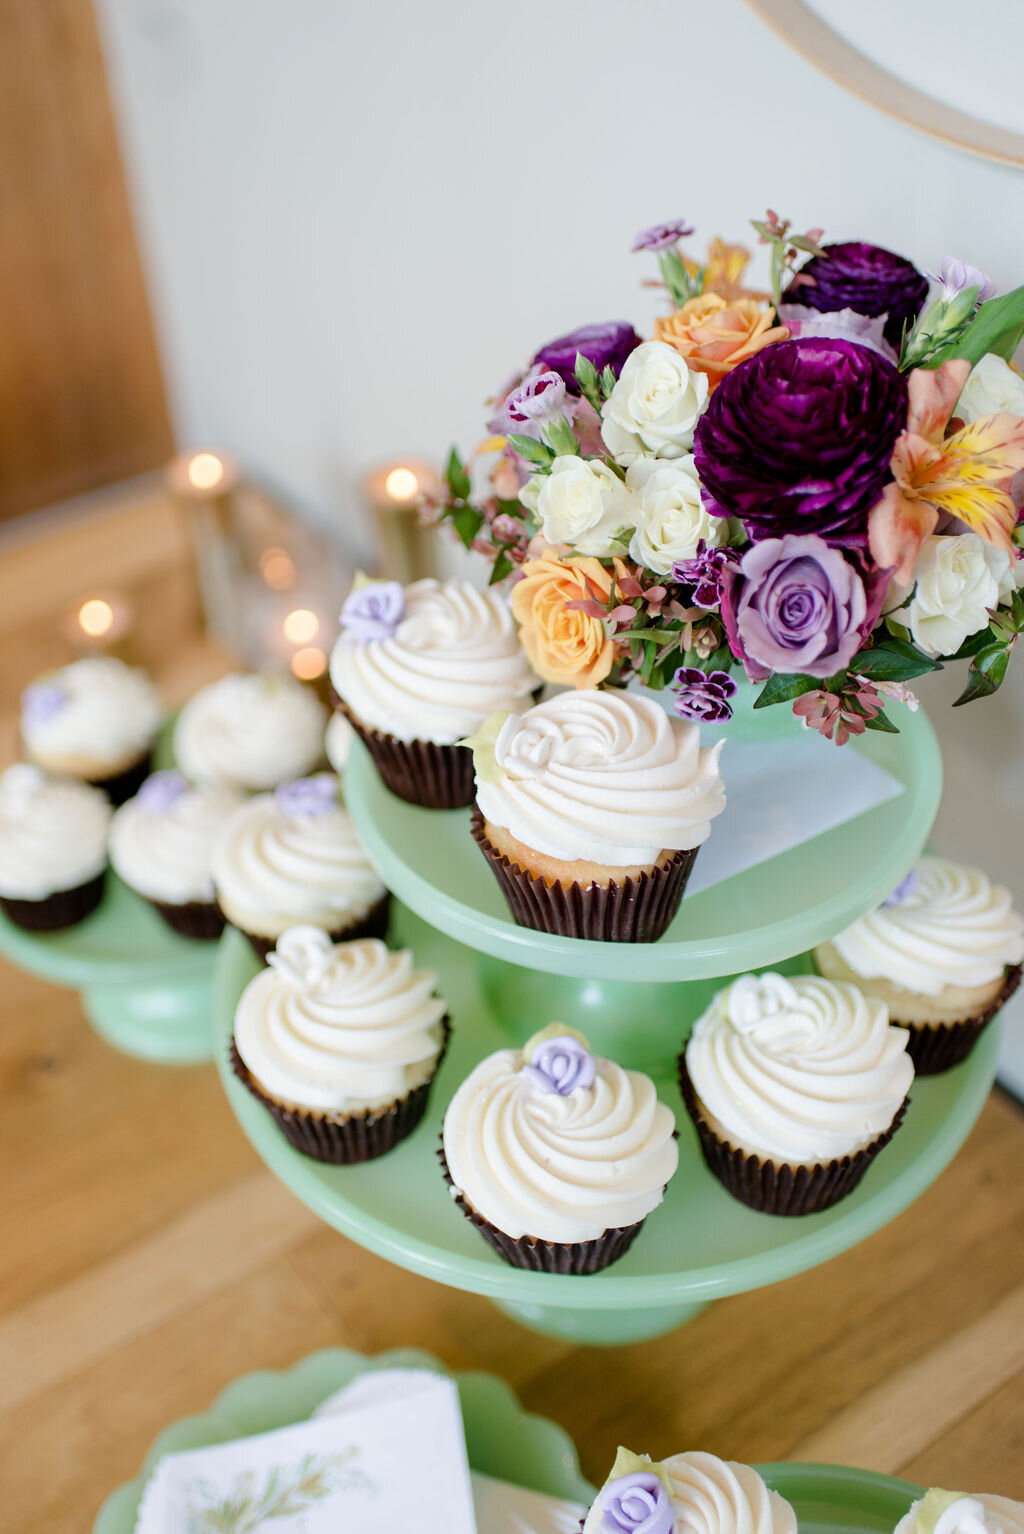 Beautiful Gluten Free Cupcakes from Corina Bakery. Image by Melanie Faun Photography